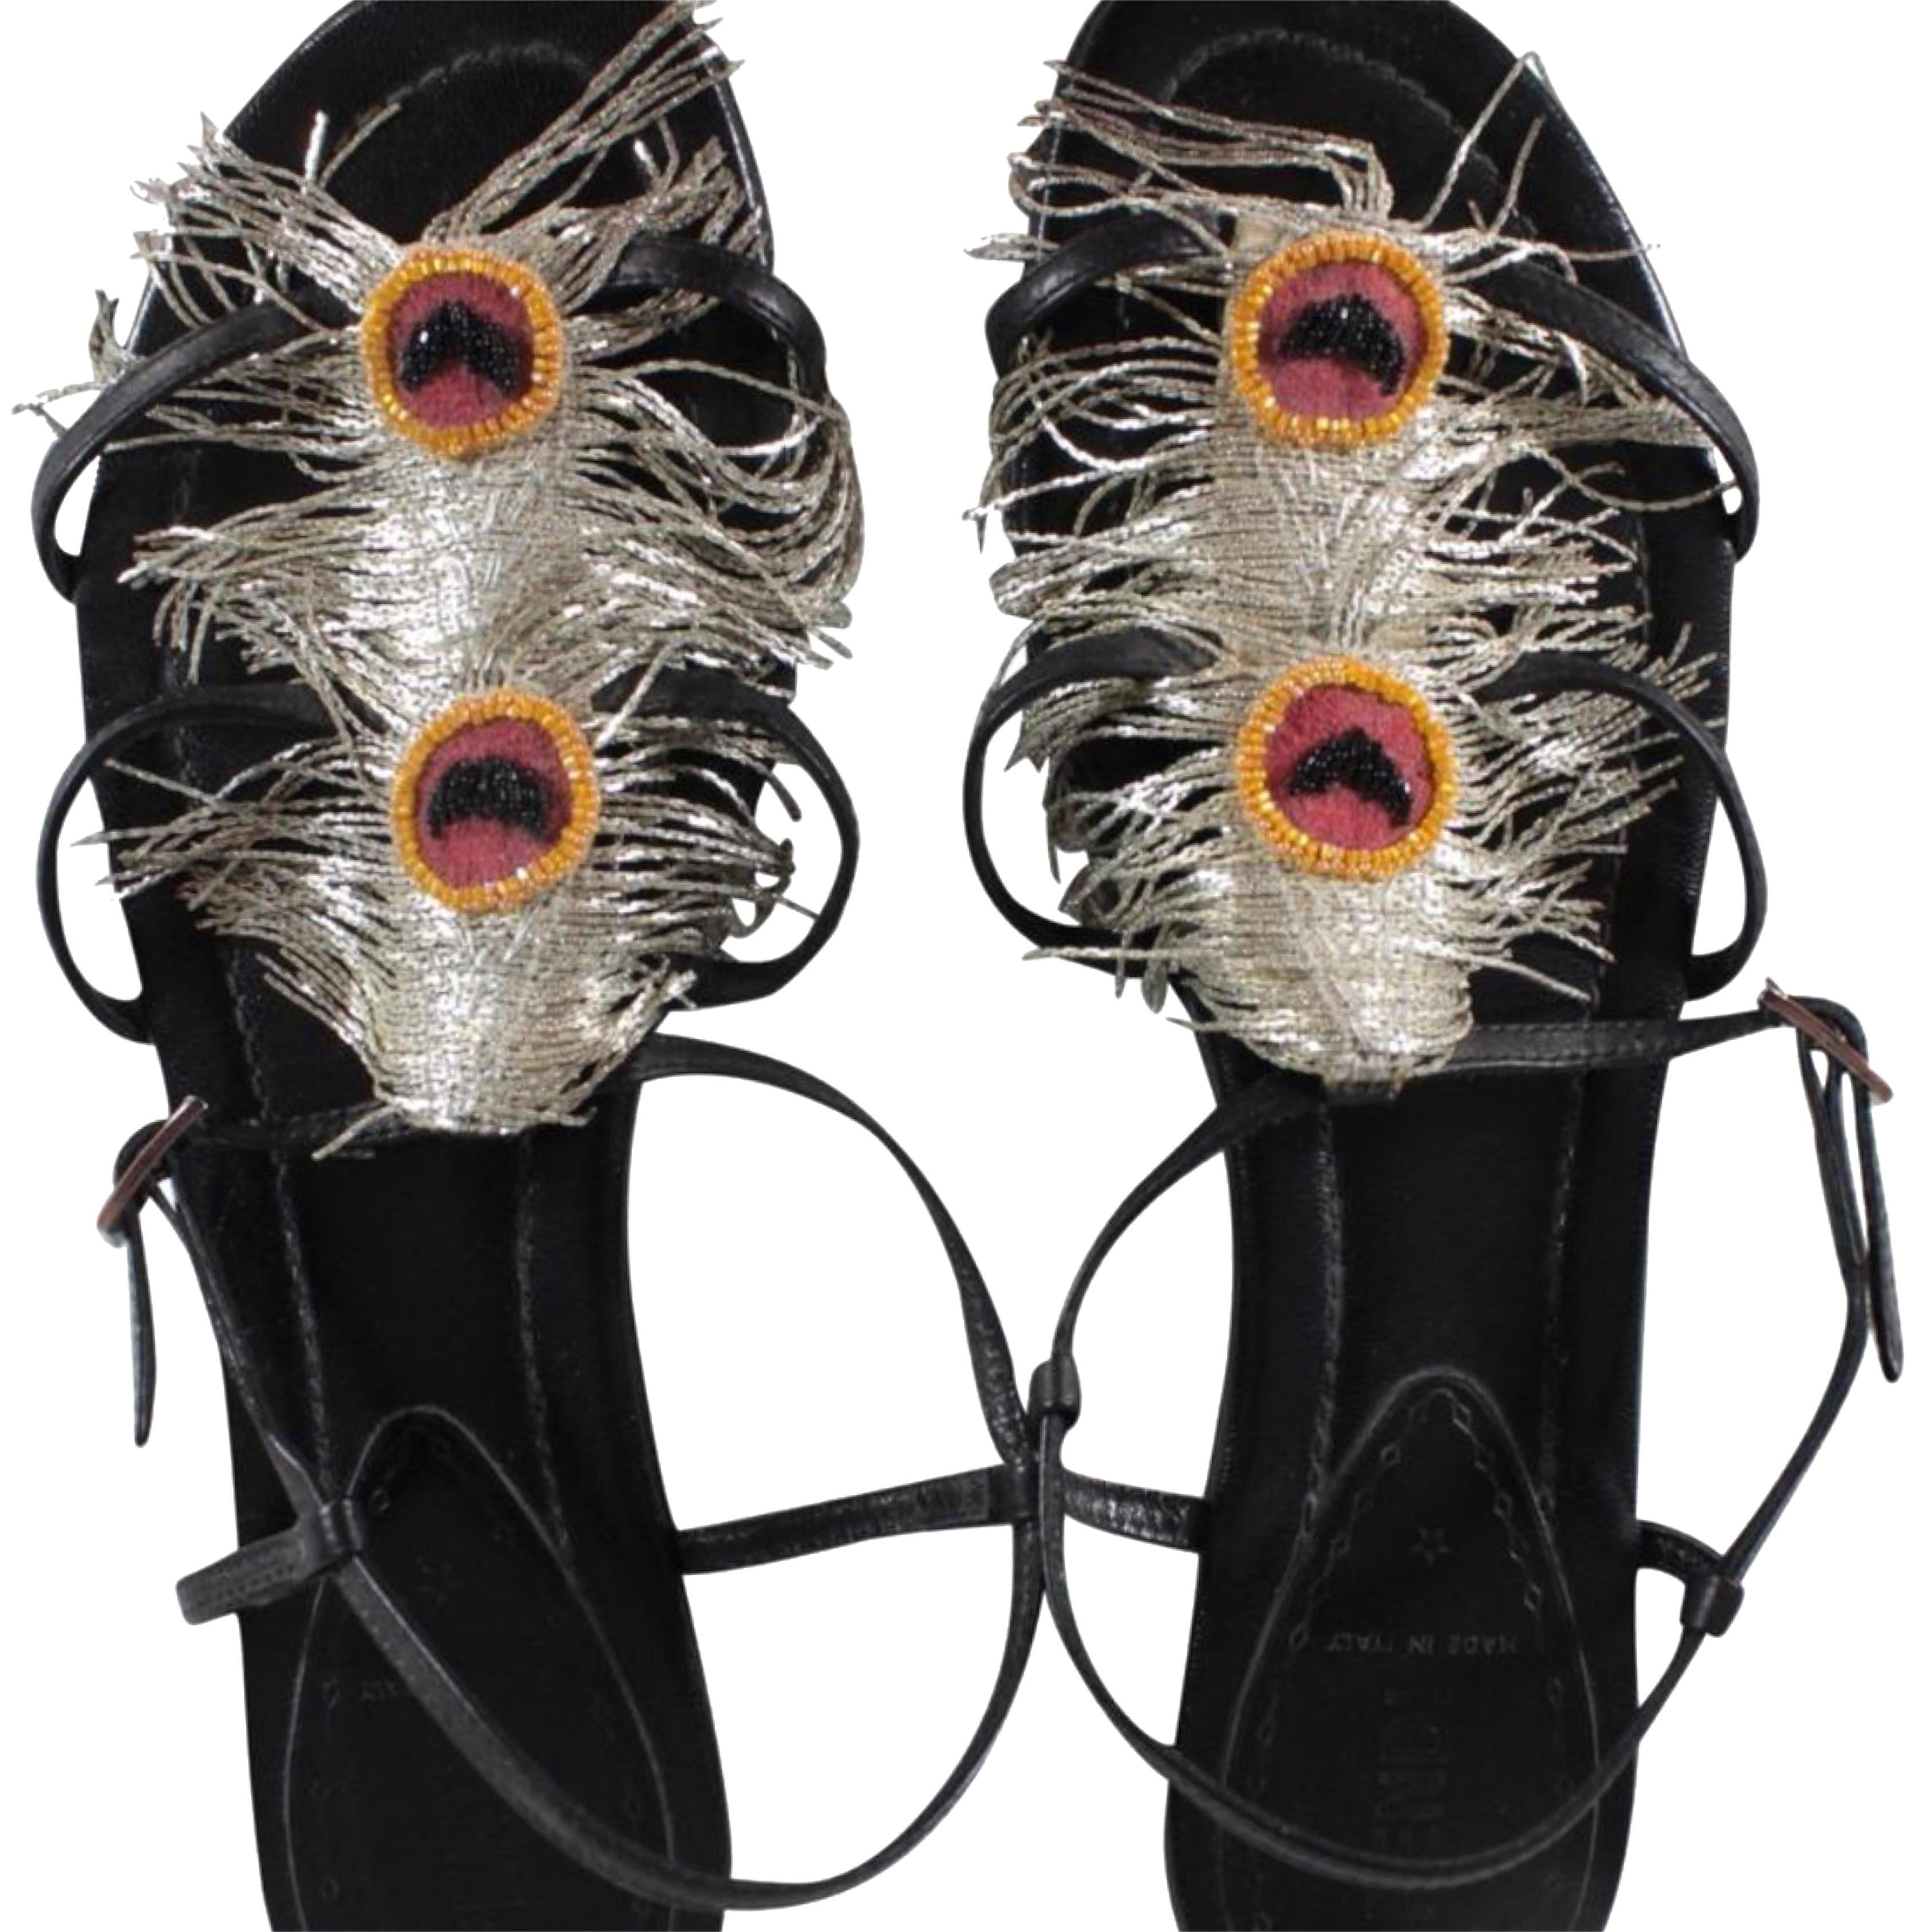 bb0b9320cb8 discount code for fendi bag fringe sandals c9a5e 43559